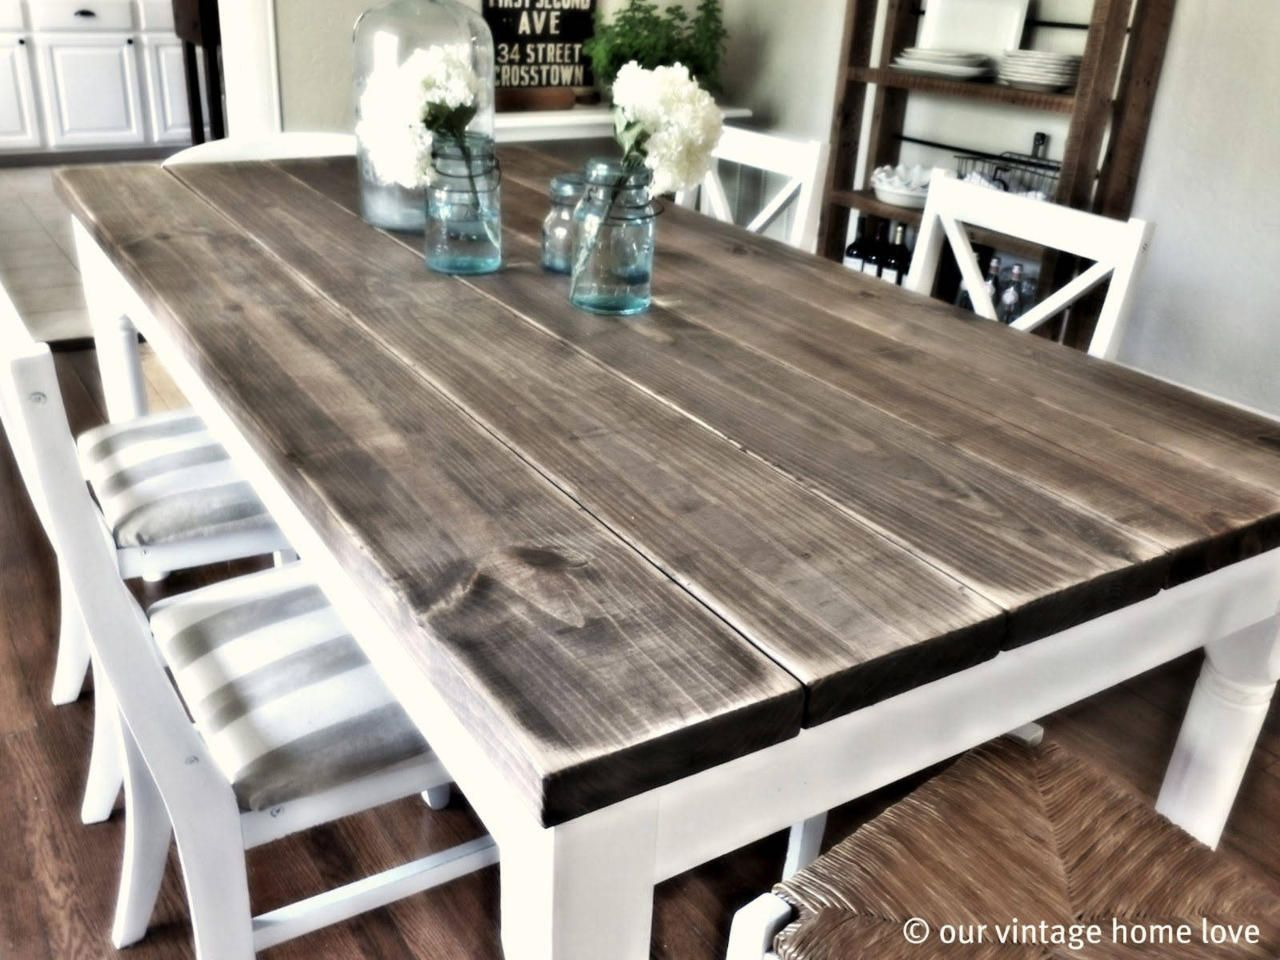 Best 25+ Table and chairs ideas on Pinterest | Kitchen farm table ...